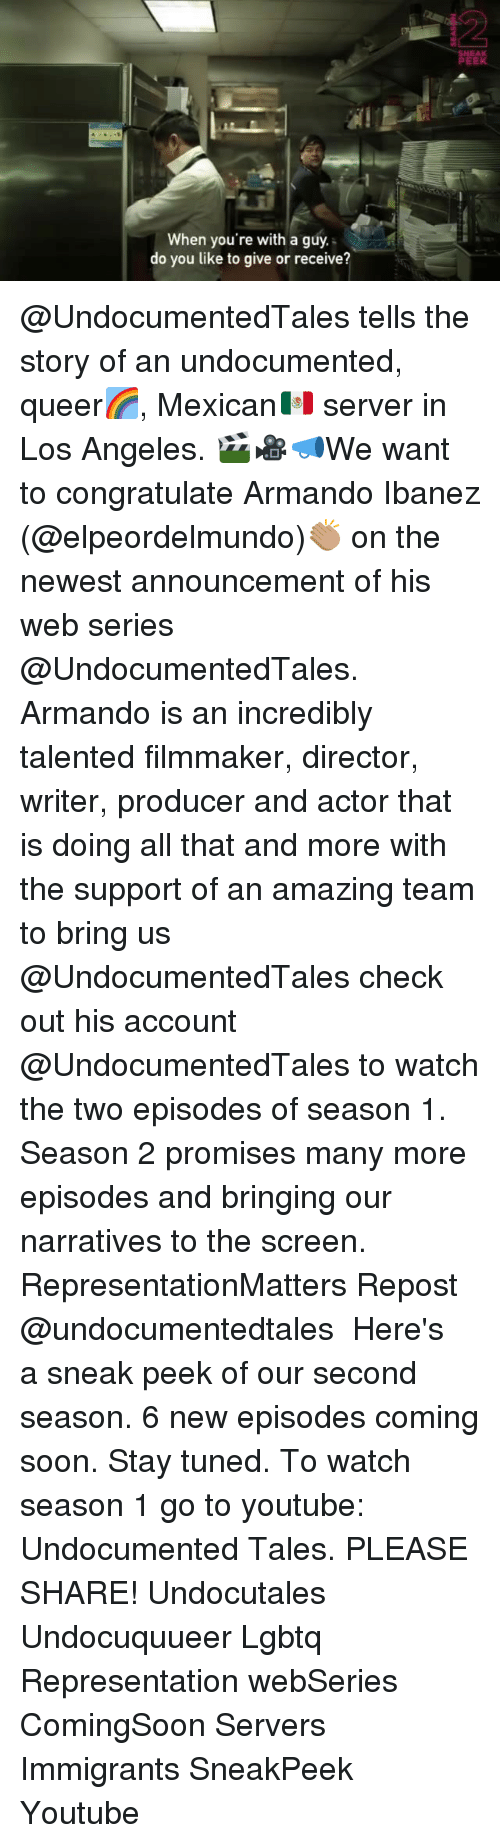 Memes, Soon..., and youtube.com: When you're with a guy.  do you like to give or receive?  EAK @UndocumentedTales tells the story of an undocumented☻, queer🌈, Mexican🇲🇽 server in Los Angeles. 🎬🎥📣We want to congratulate Armando Ibanez (@elpeordelmundo)👏🏽 on the newest announcement of his web series @UndocumentedTales. Armando is an incredibly talented filmmaker, director, writer, producer and actor that is doing all that and more with the support of an amazing team to bring us @UndocumentedTales check out his account @UndocumentedTales to watch the two episodes of season 1. Season 2 promises many more episodes and bringing our narratives to the screen. RepresentationMatters Repost @undocumentedtales ・・・ Here's a sneak peek of our second season. 6 new episodes coming soon. Stay tuned. To watch season 1 go to youtube: Undocumented Tales. PLEASE SHARE! Undocutales Undocuquueer Lgbtq Representation webSeries ComingSoon Servers Immigrants SneakPeek Youtube